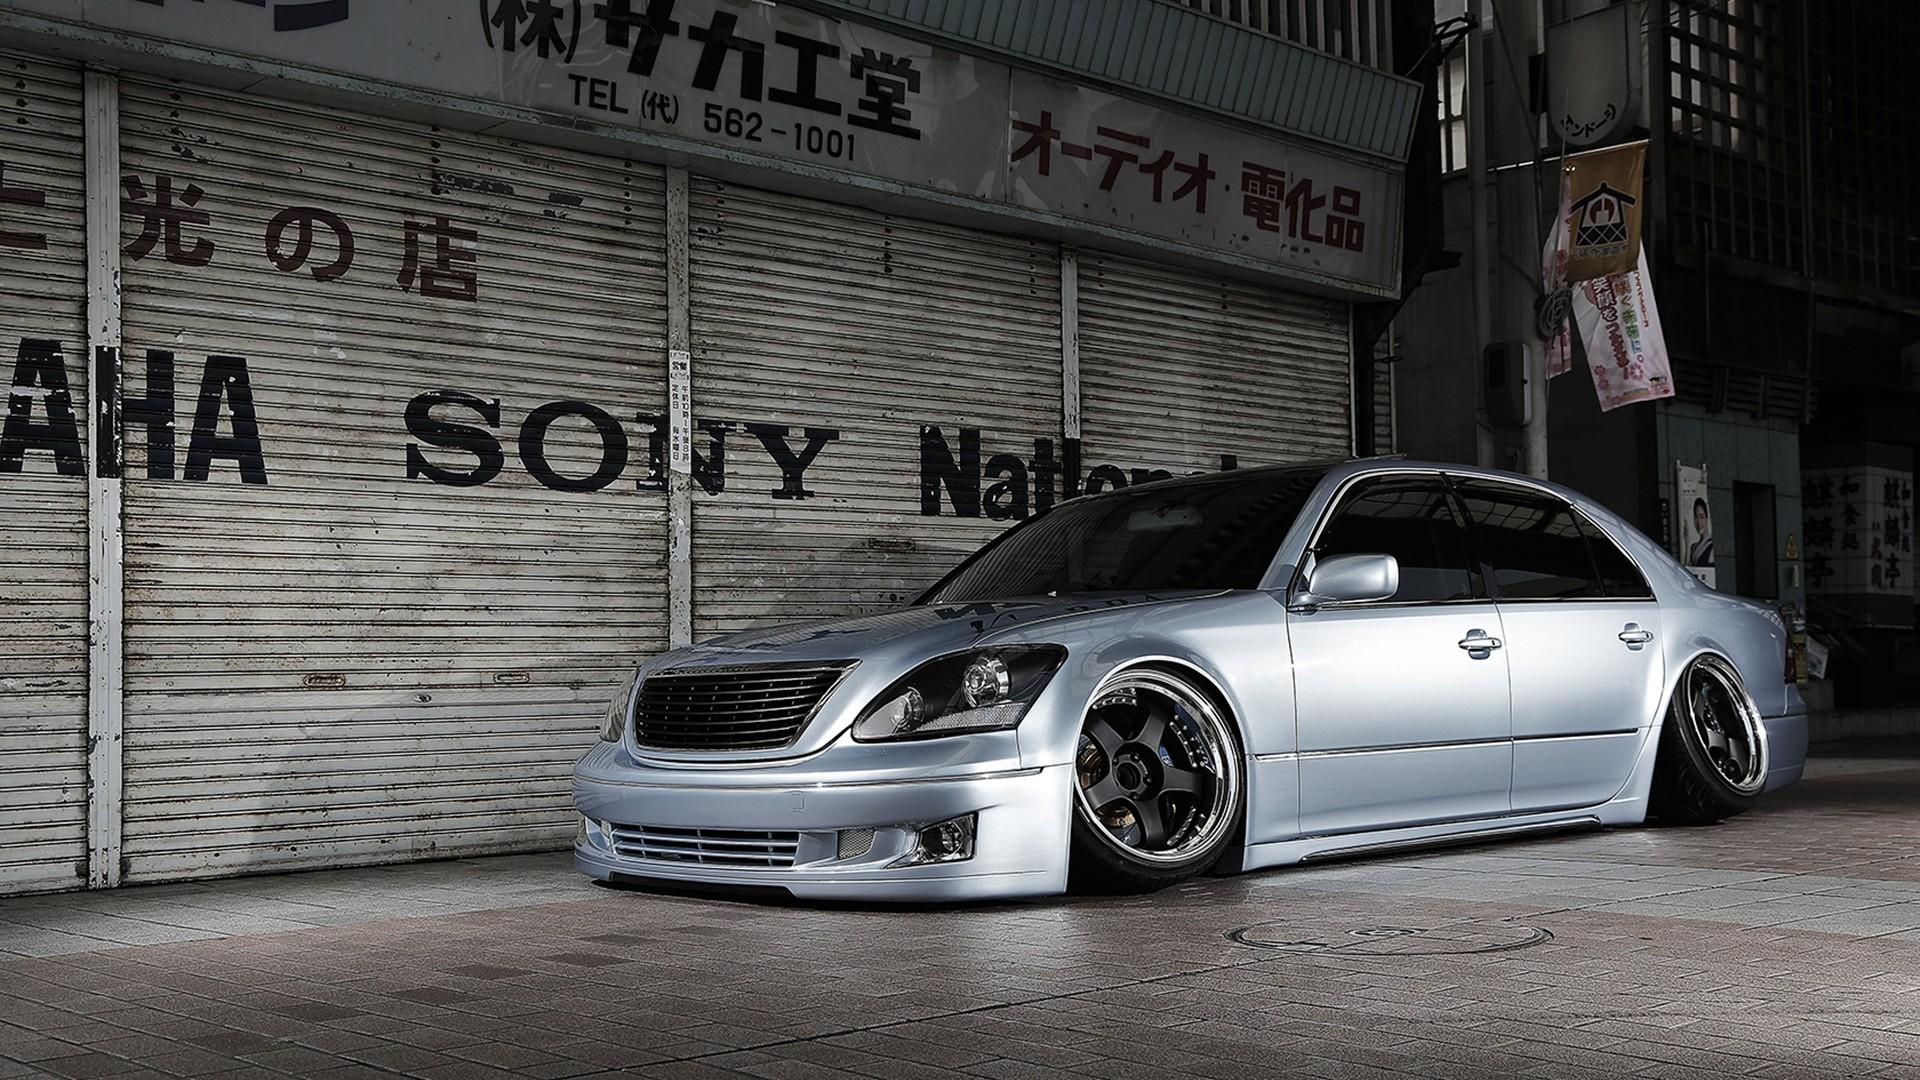 Japan cars lexus slammed toyota celsior camber wallpaper 67533 1920x1080